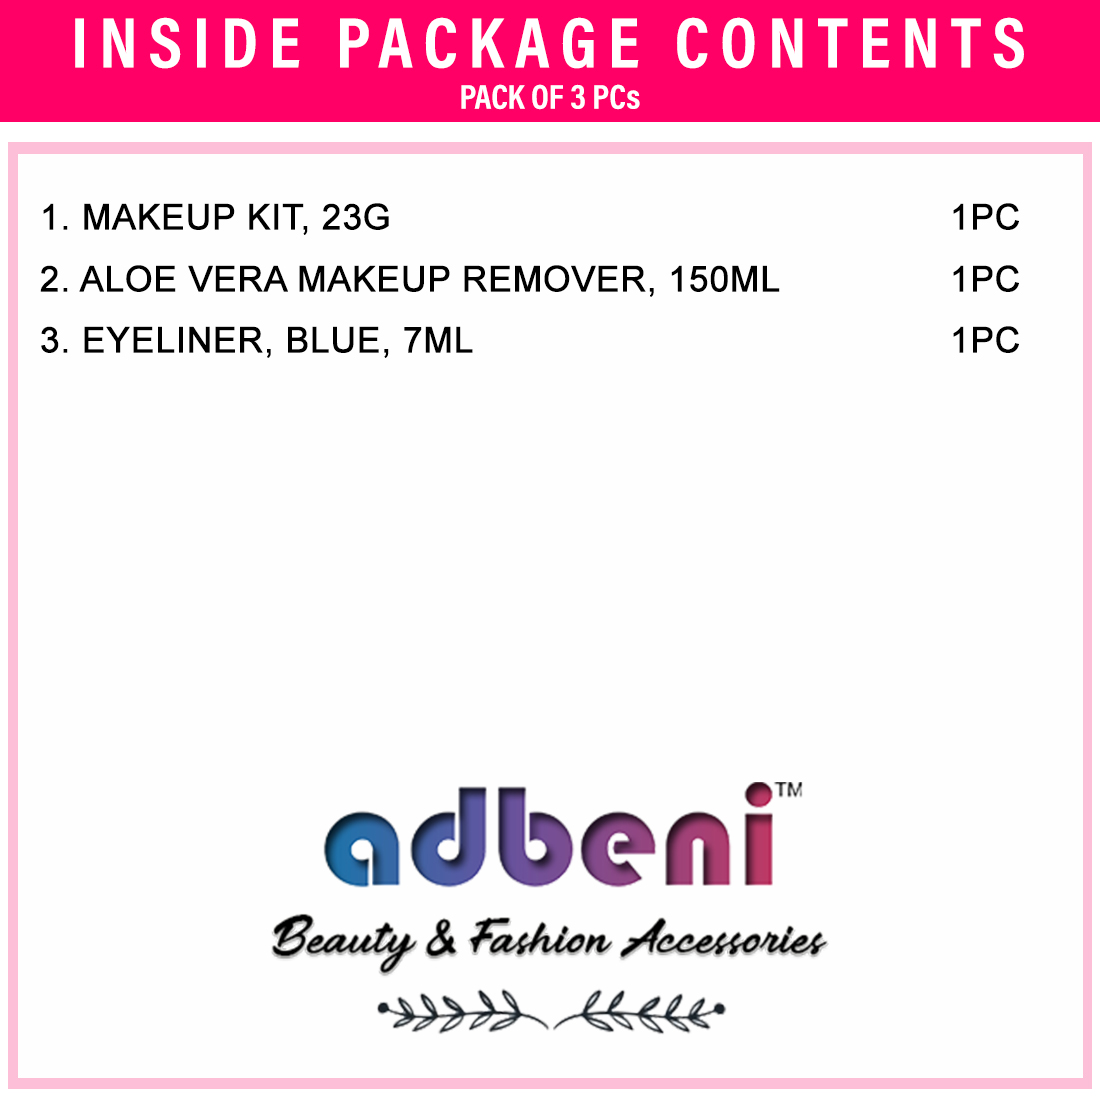 Adbeni Aloevera Makeup Remover- Makeup KitBlue Eyeliner- Pack of 3- (GC878)